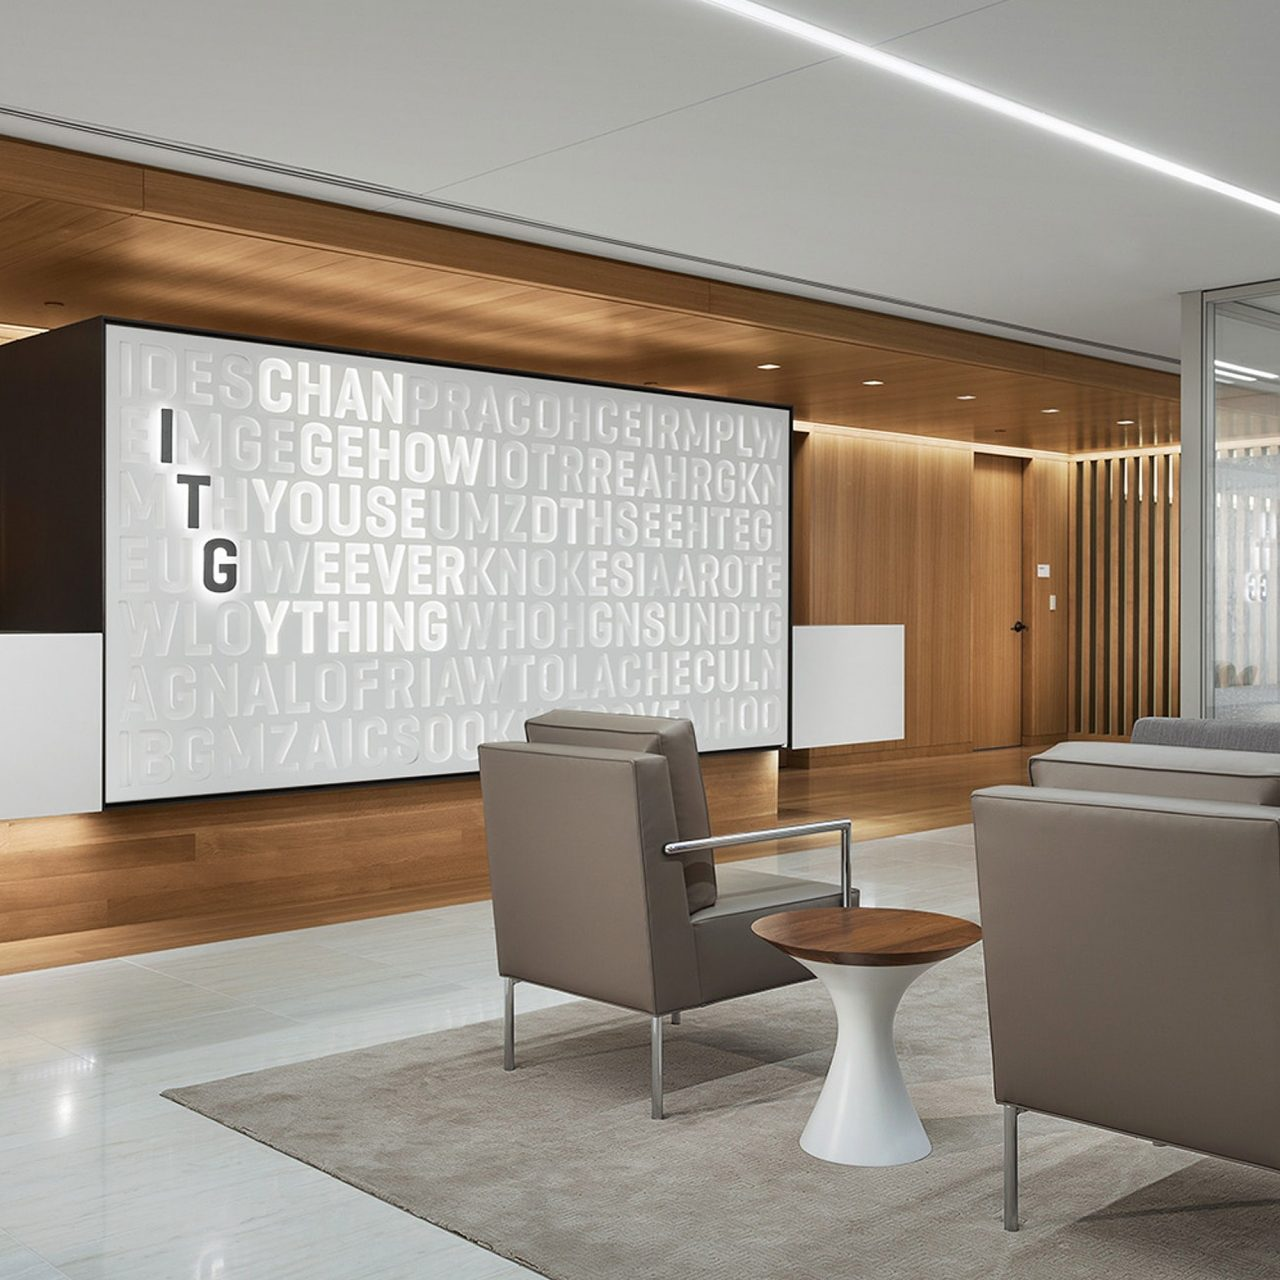 Interior Design for ITG designed by Landor